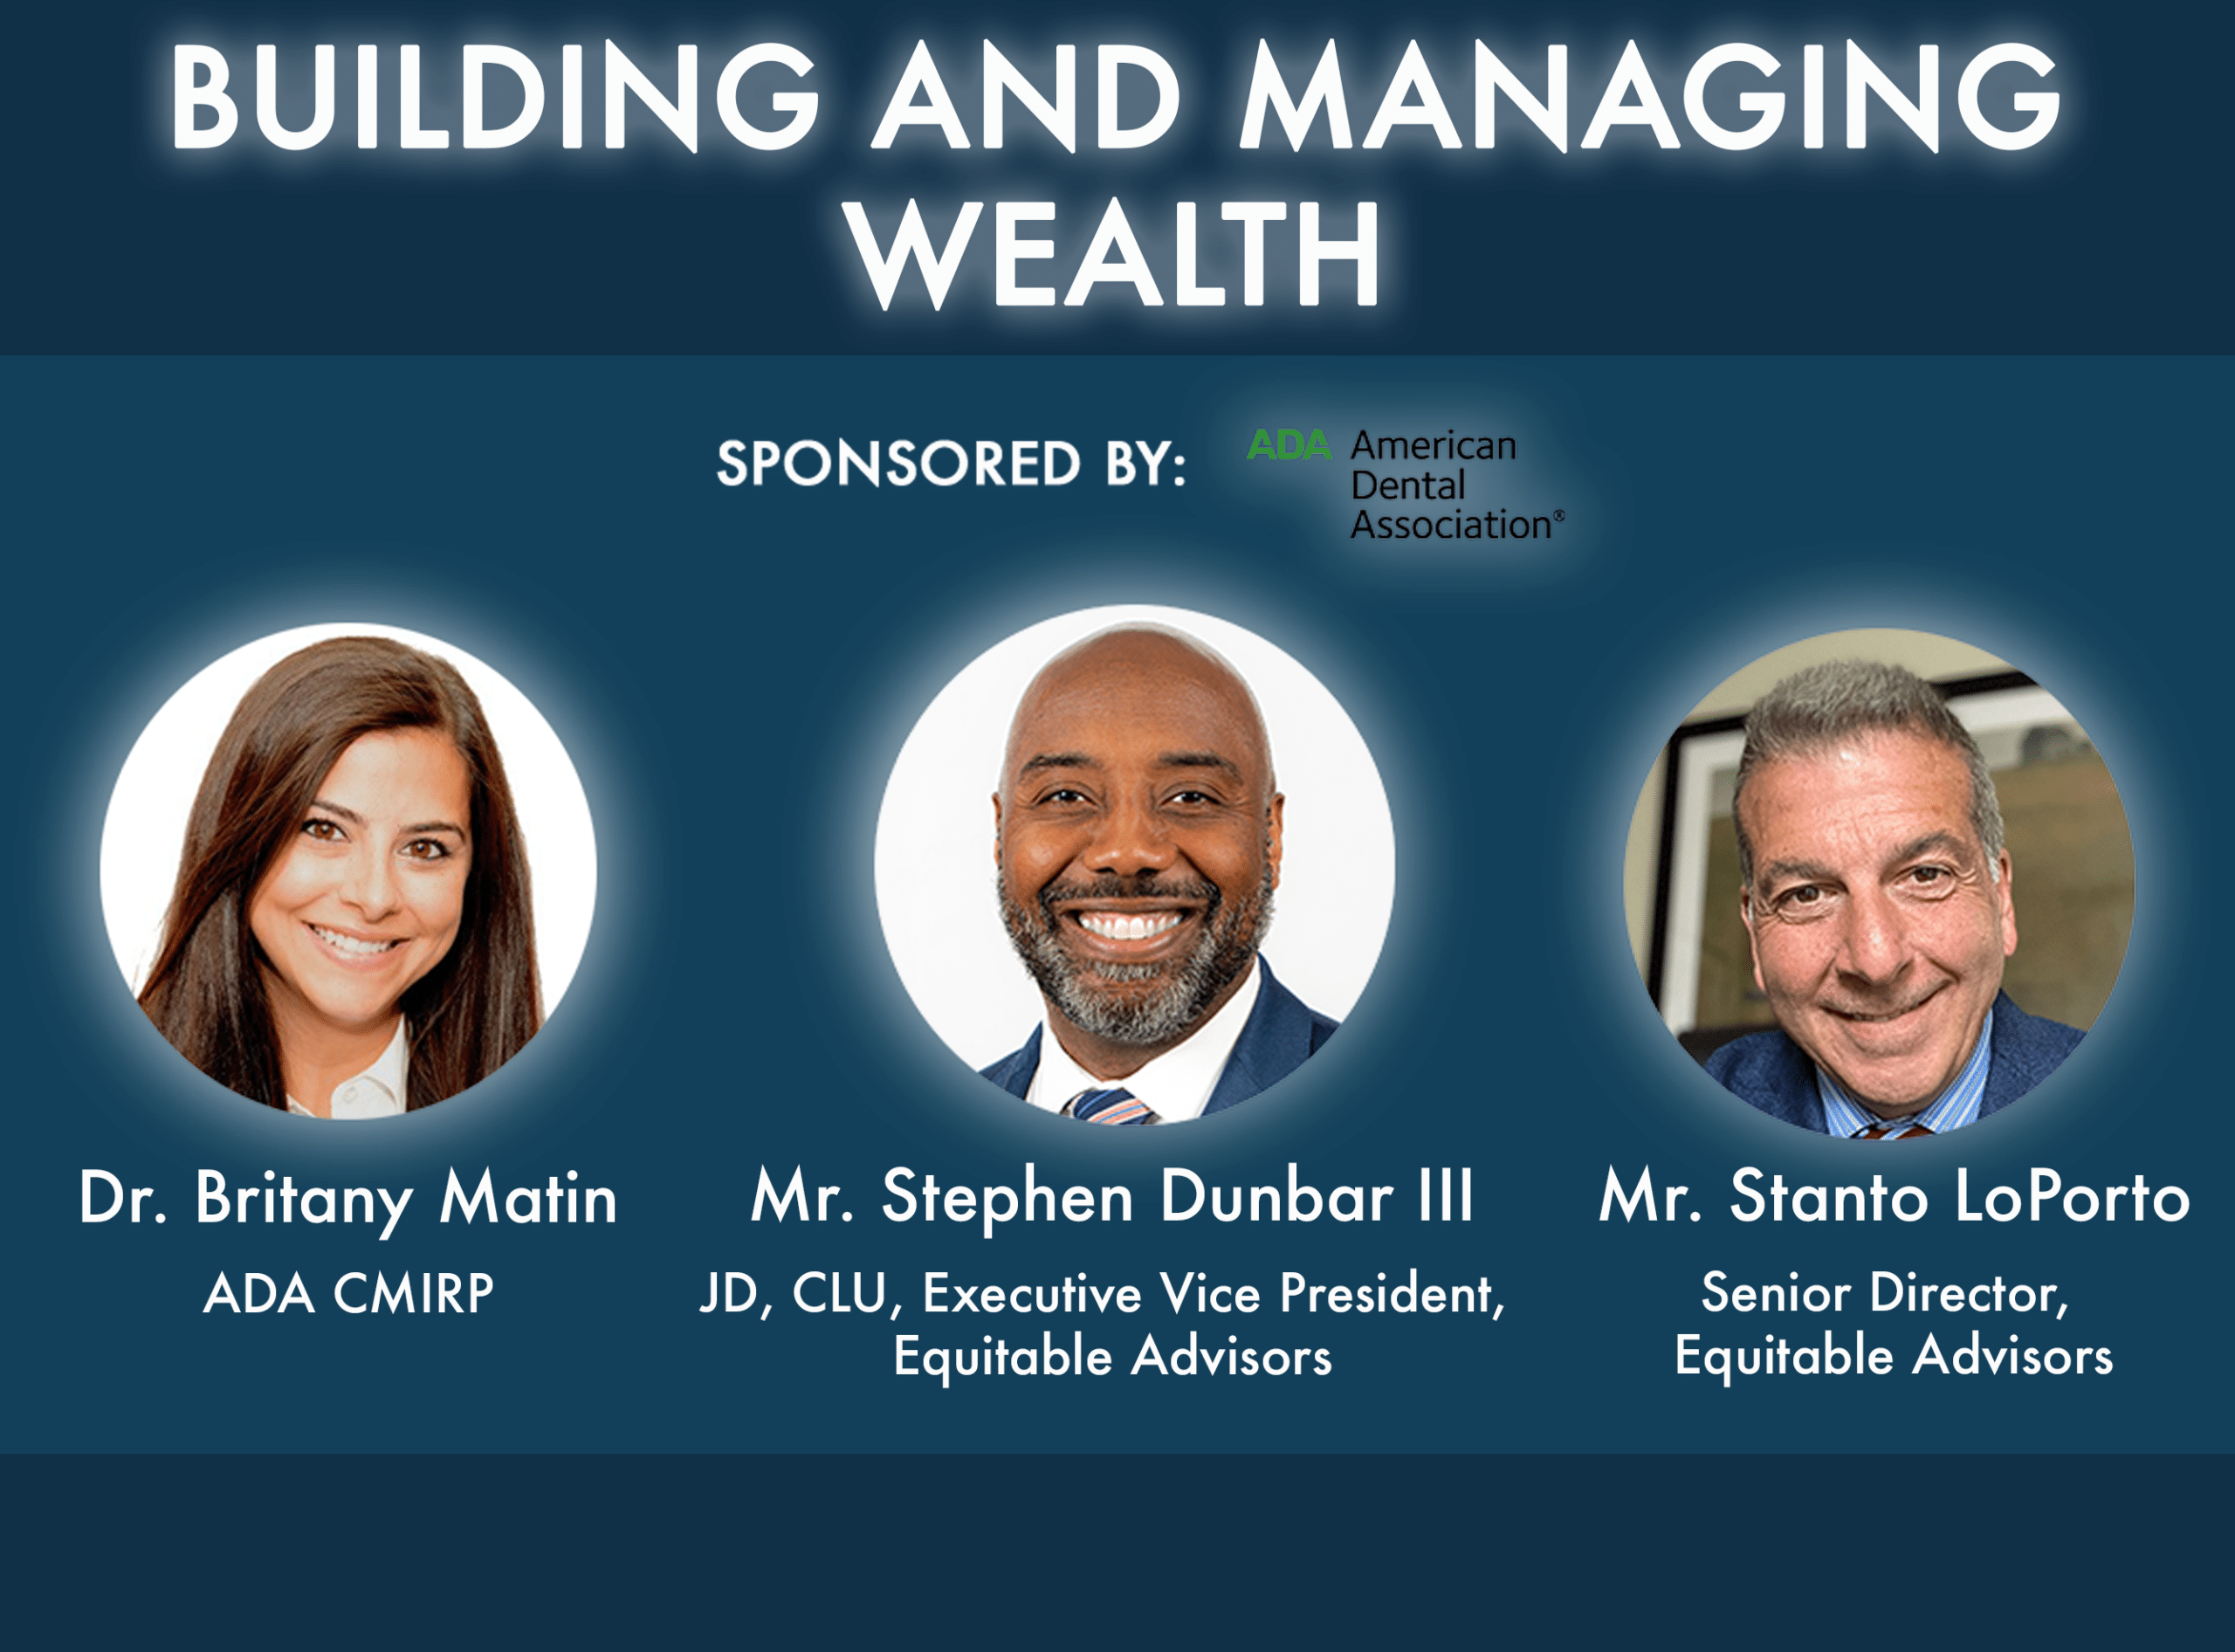 Building and Managing Wealth